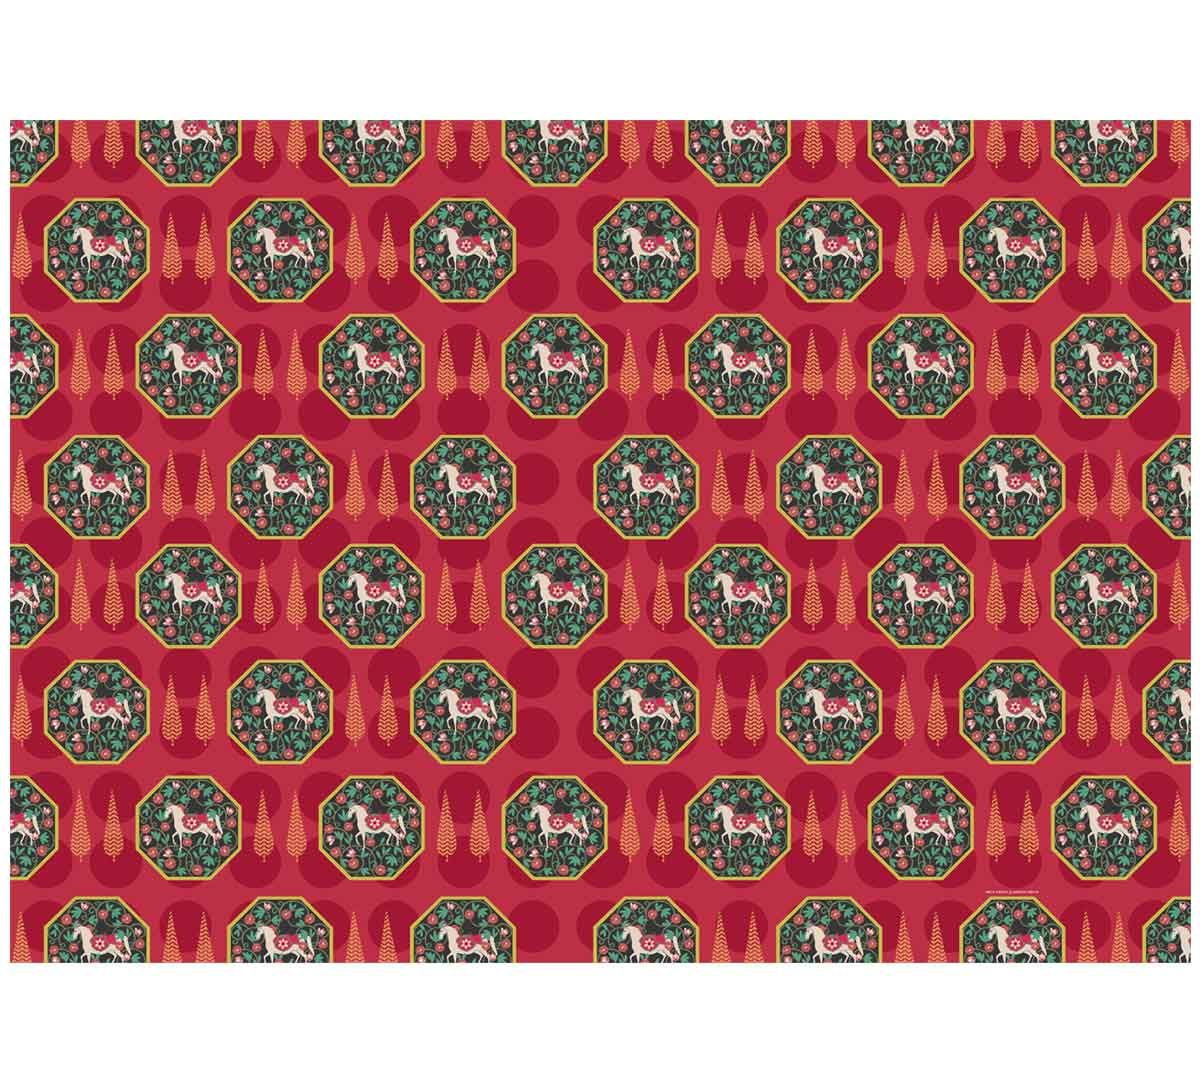 India Circus Conifer Stallion Reiteration Gift Wrapping Paper